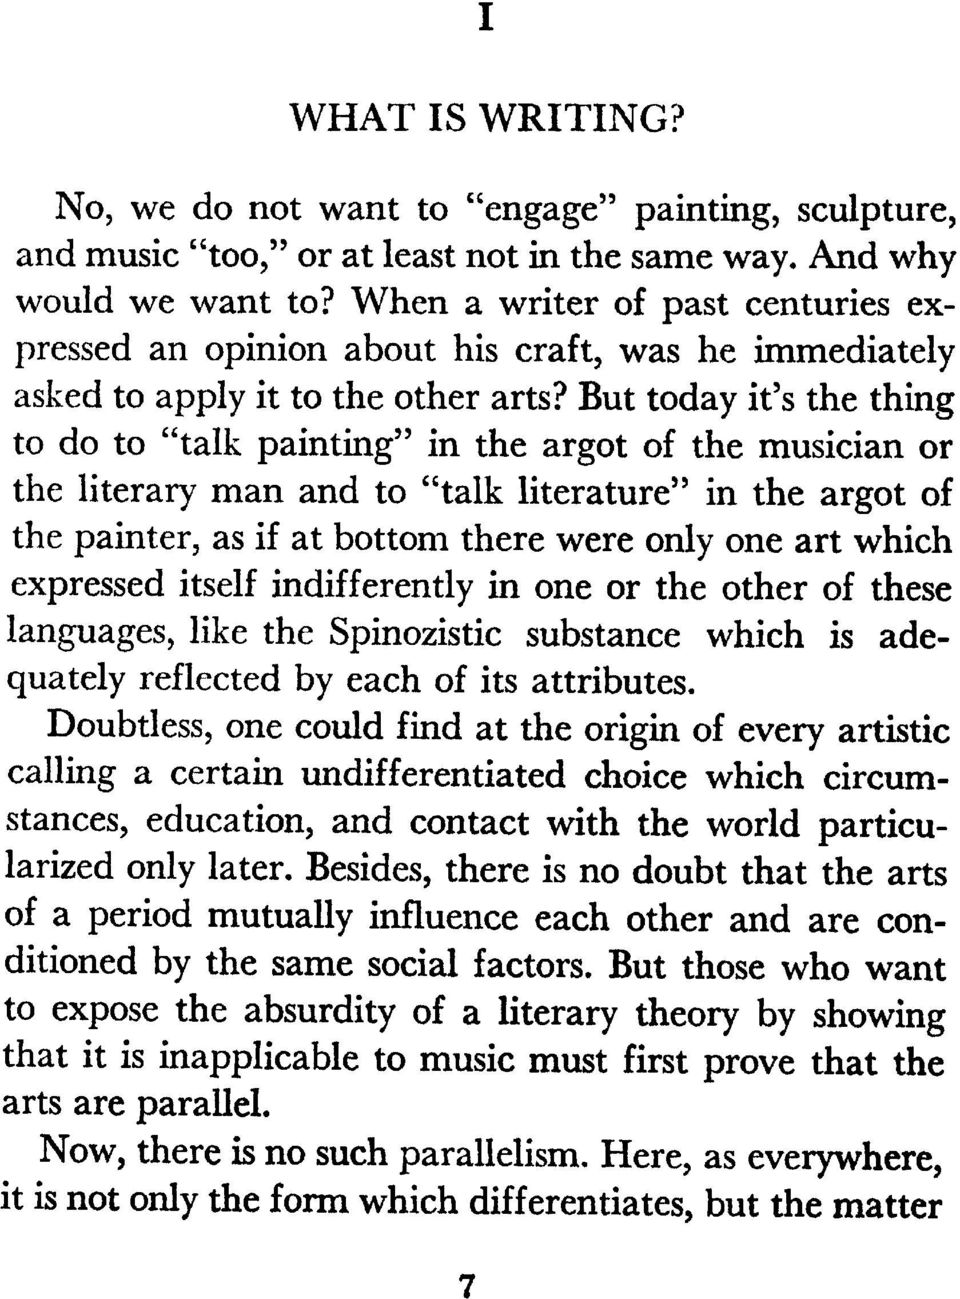 "But today it's the thing 55 to do to ""talk painting in the argot of the musician or the literary man and to ""talk literature 55 in the argot of the painter, as if at bottom there were only one art"